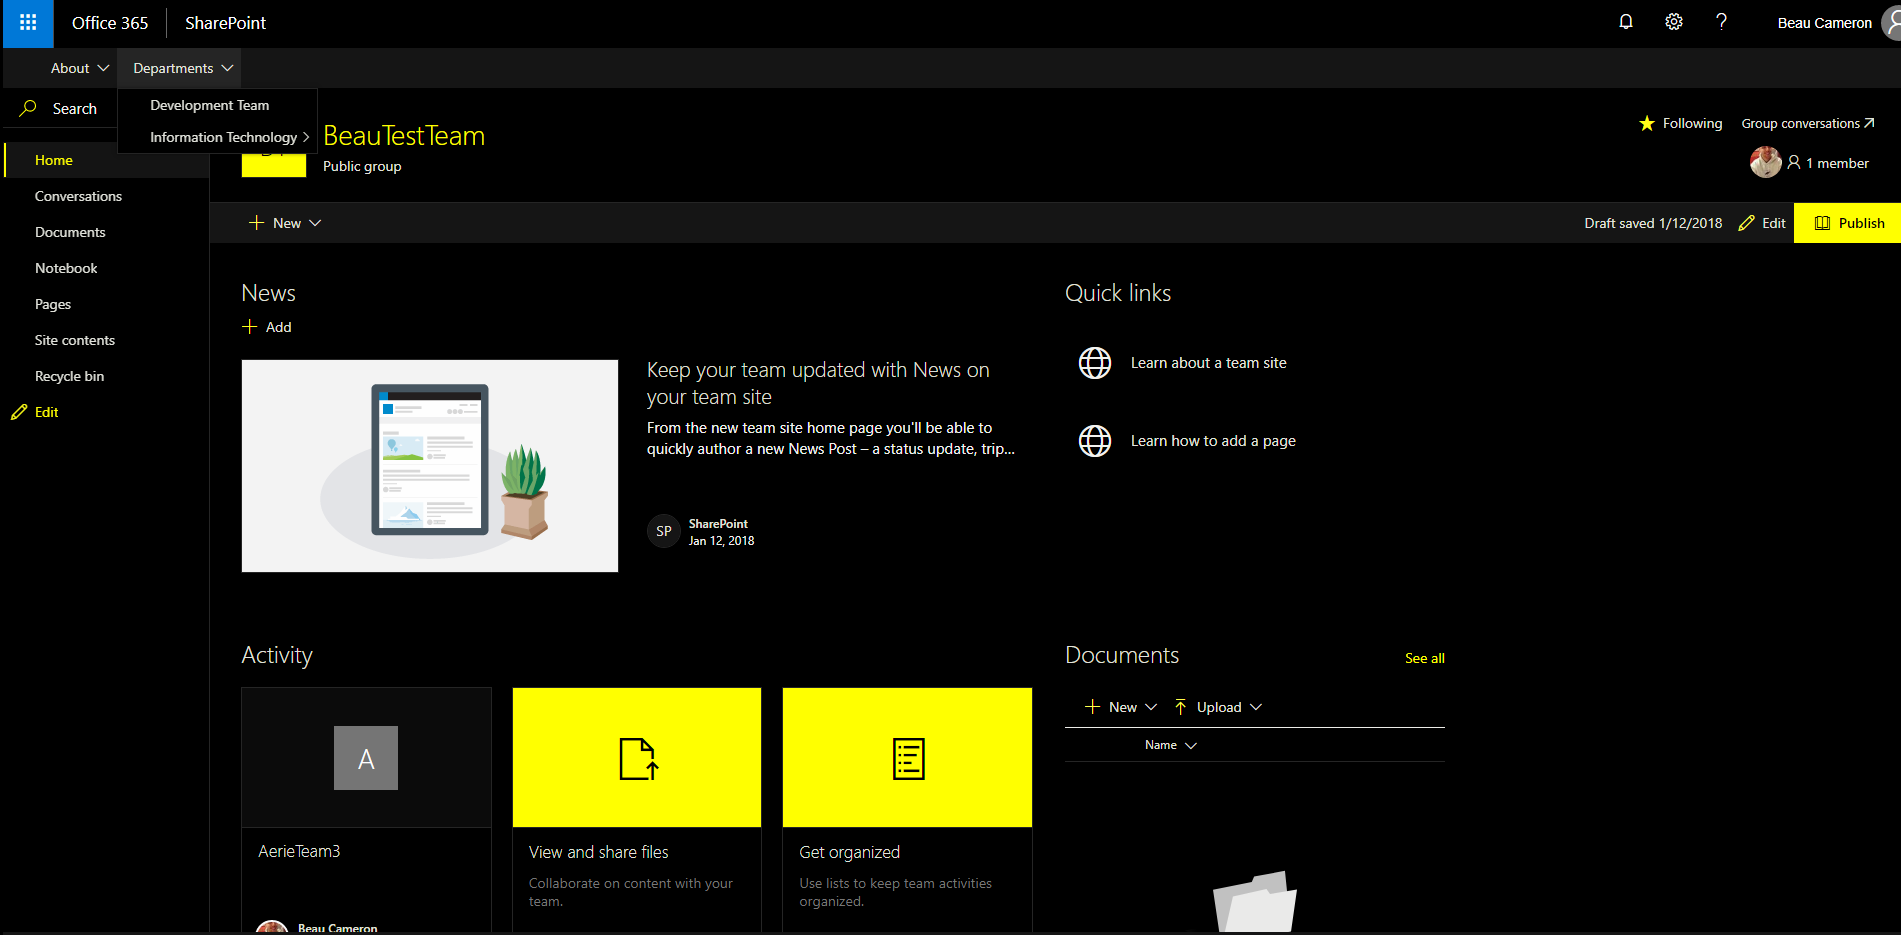 How To Create Modern Sharepoint Site Templates Using Office 365 Site Designs Beau Cameron,Design West Architects